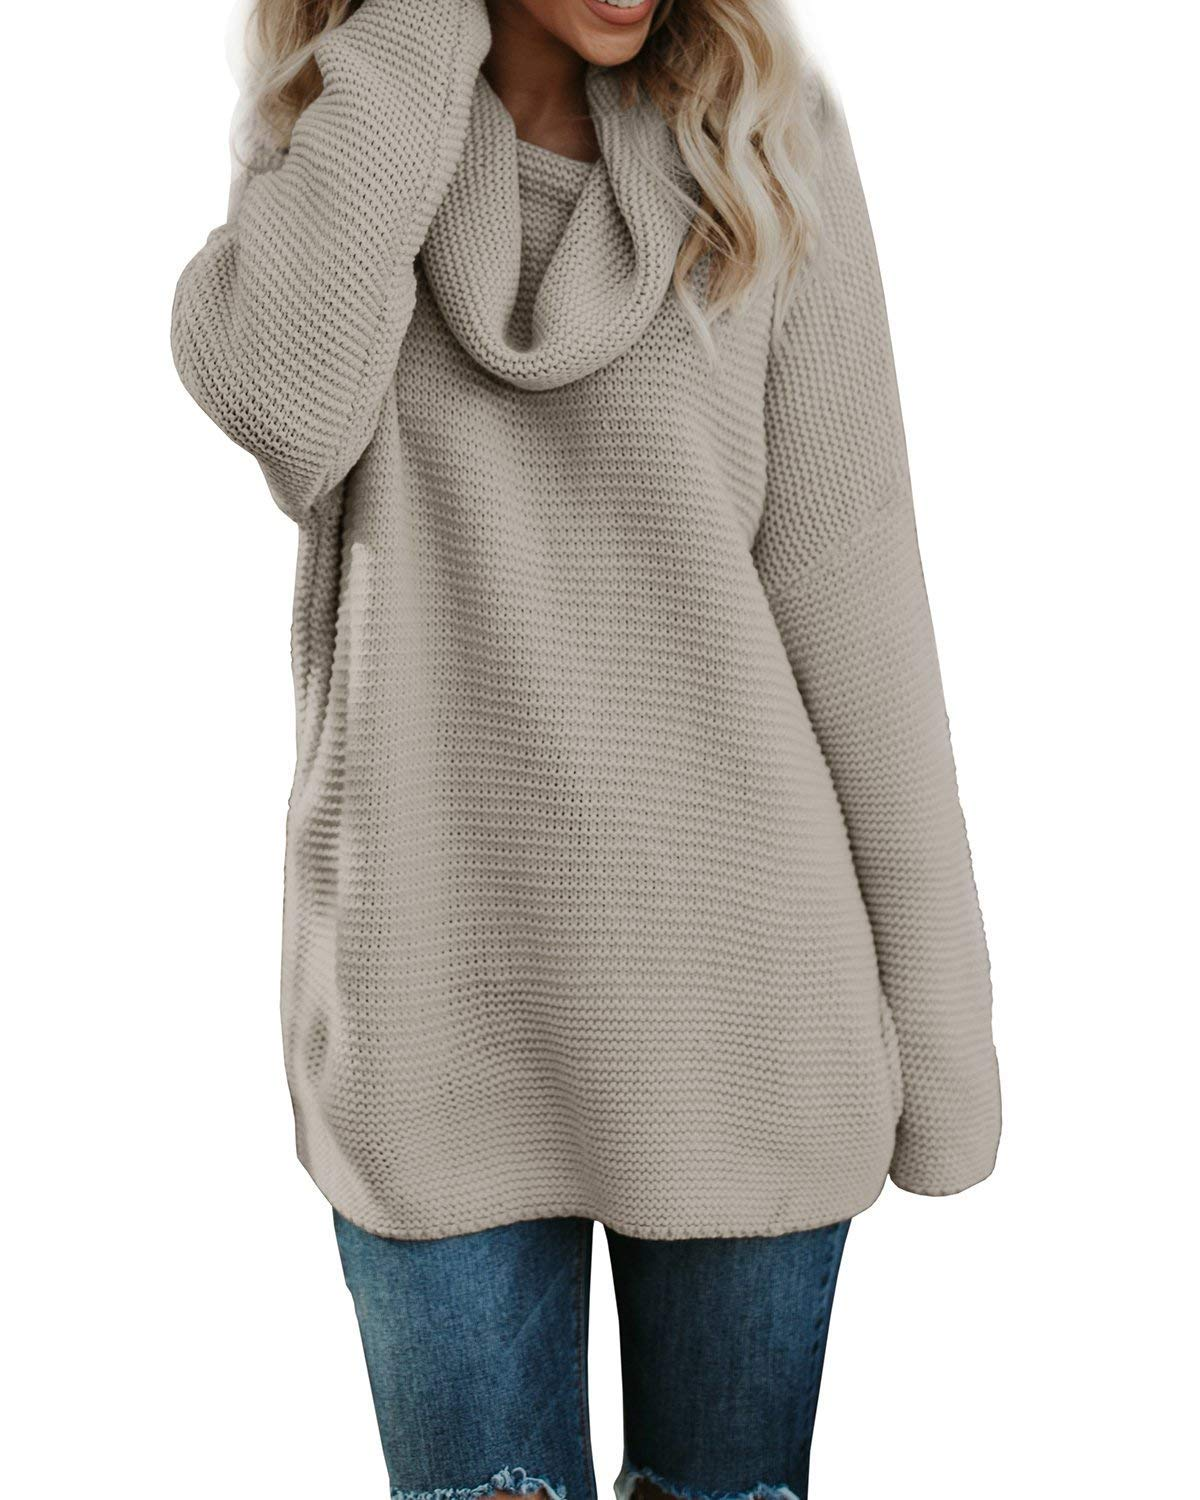 Womens Cowl Neck Sweaters Long Sleeve Chunky Turtleneck Sweater Knit Oversized Pullover